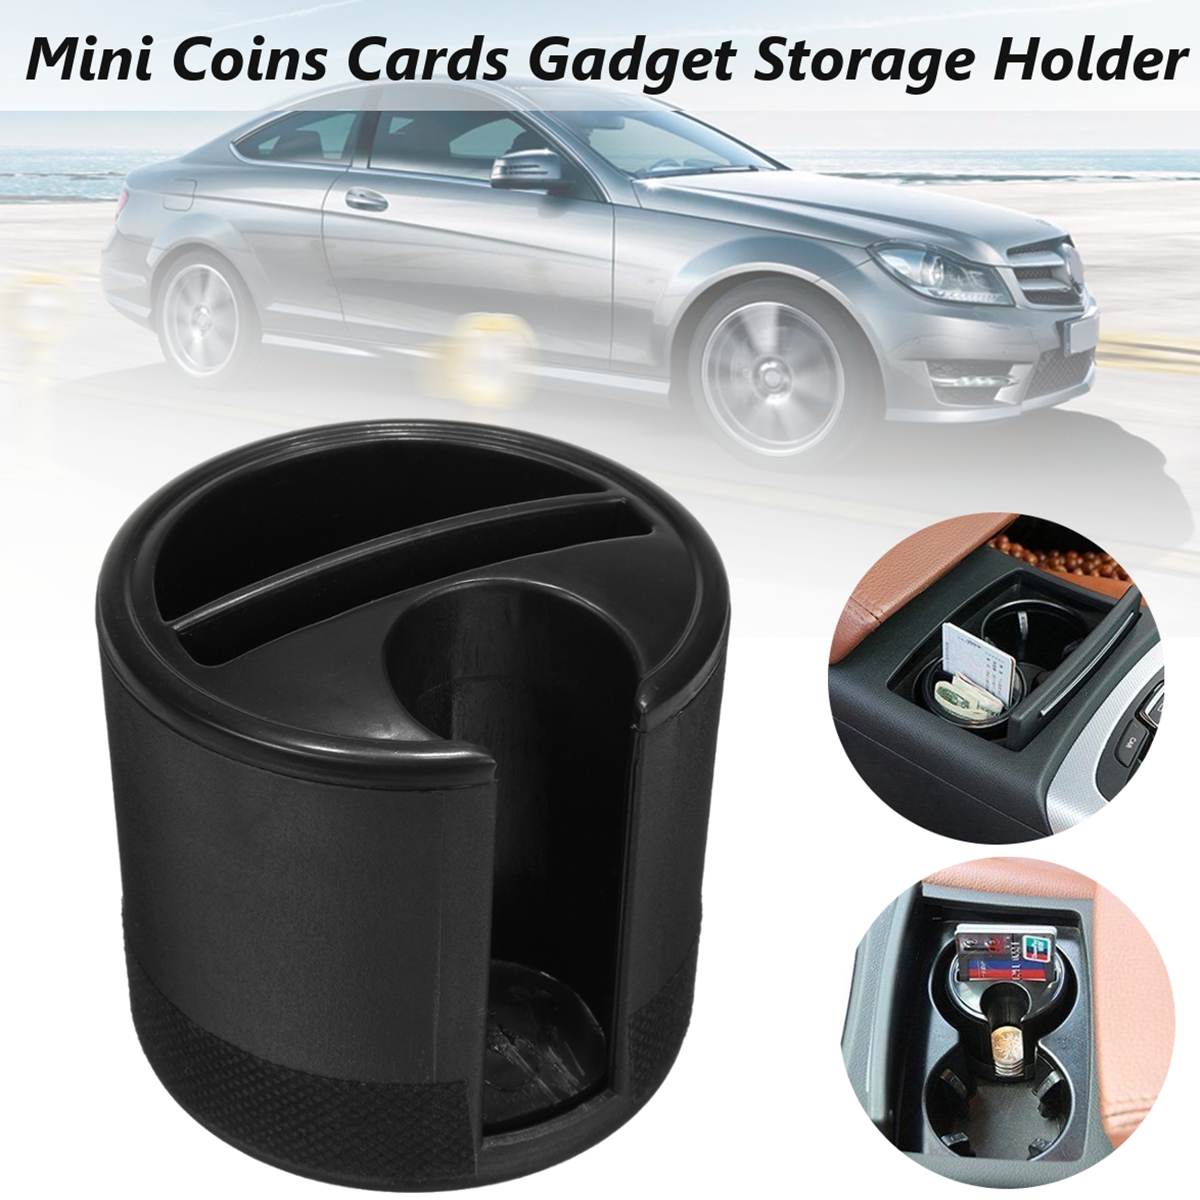 Multi-functional ABS Car Mini Key Coins Cup Holder Cards Gadget Independent Storage Box Slot Black